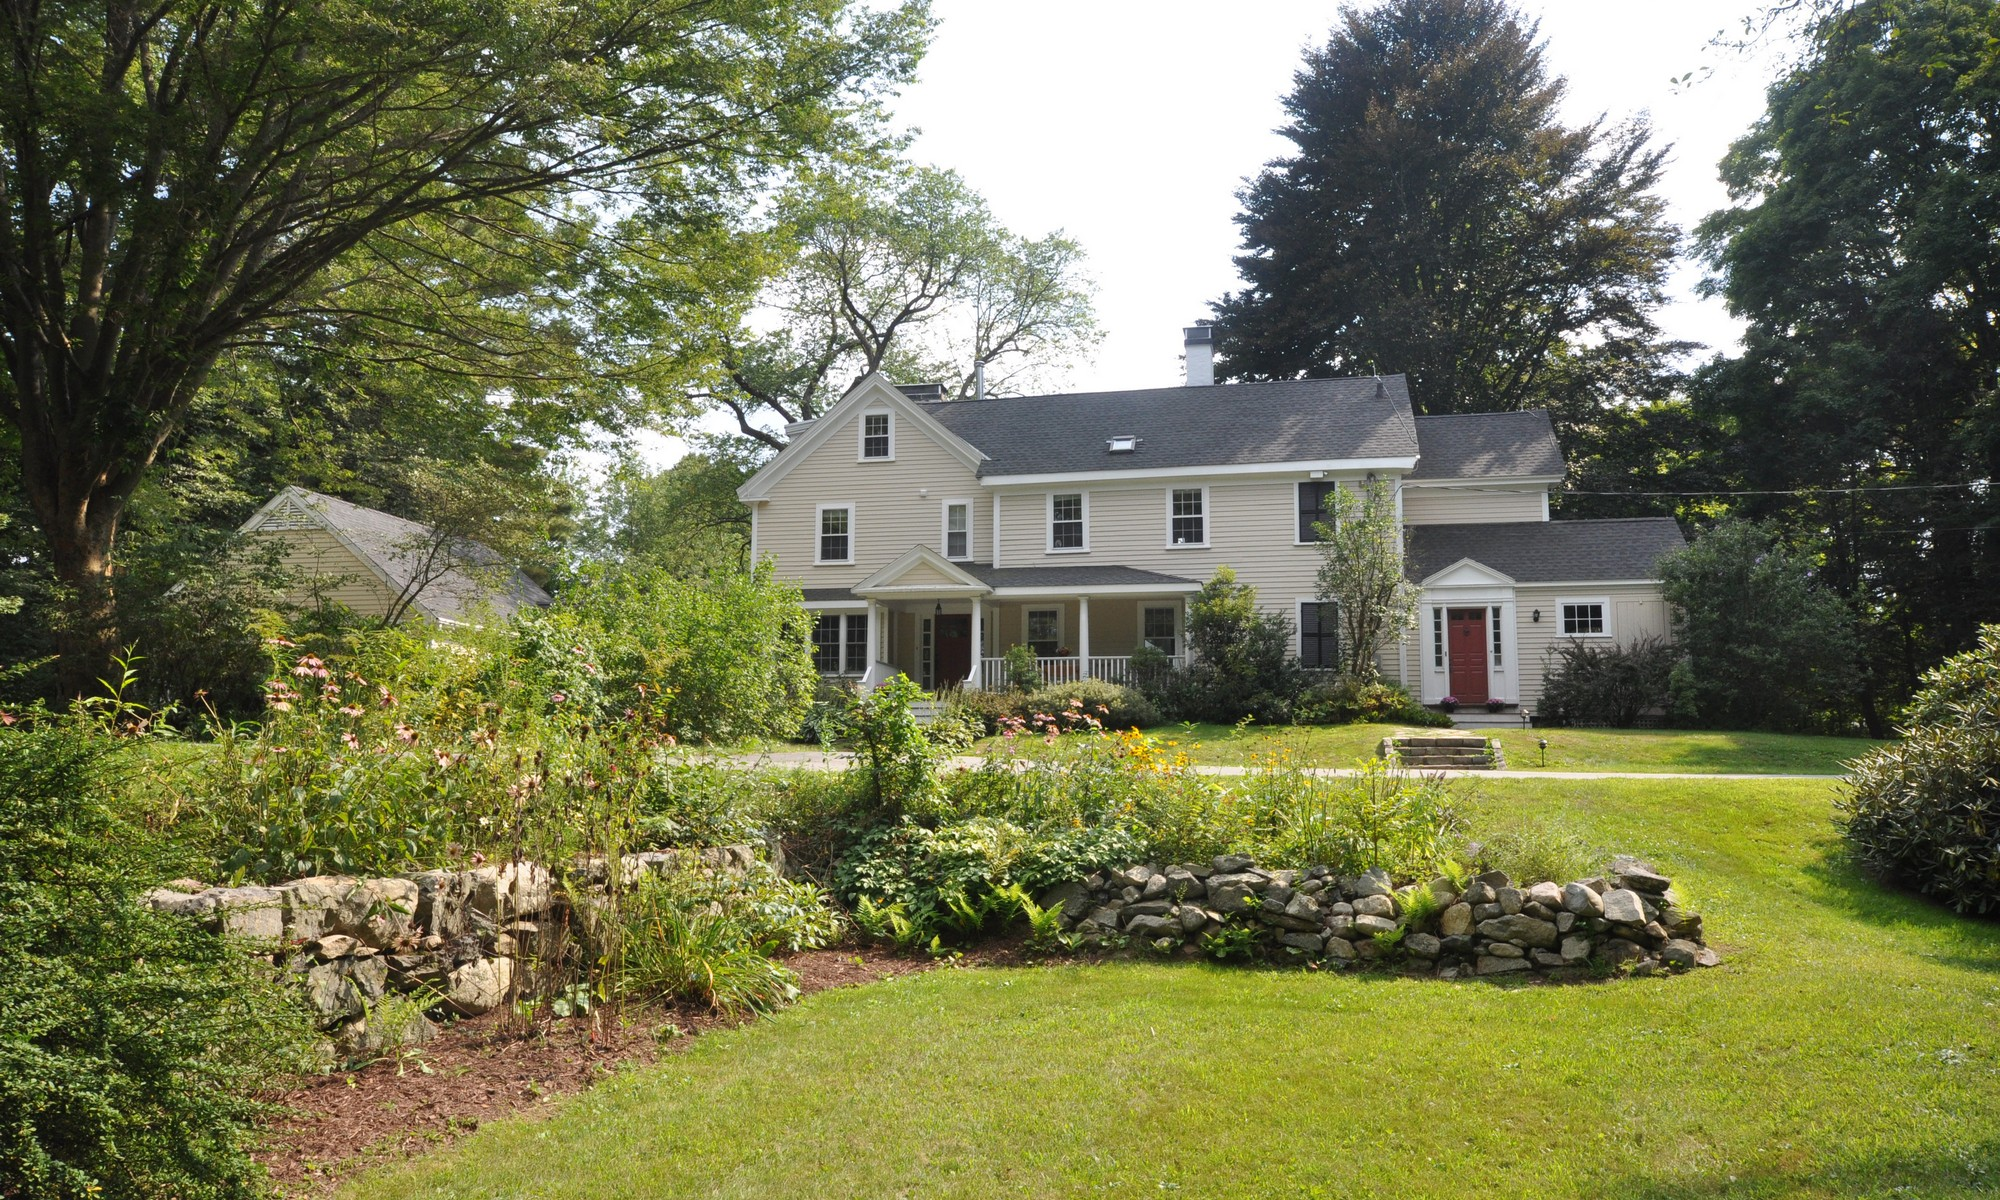 Single Family Home for Sale at Vermont Style Farmhouse 14 Winter Street Lincoln, Massachusetts 01773 United States